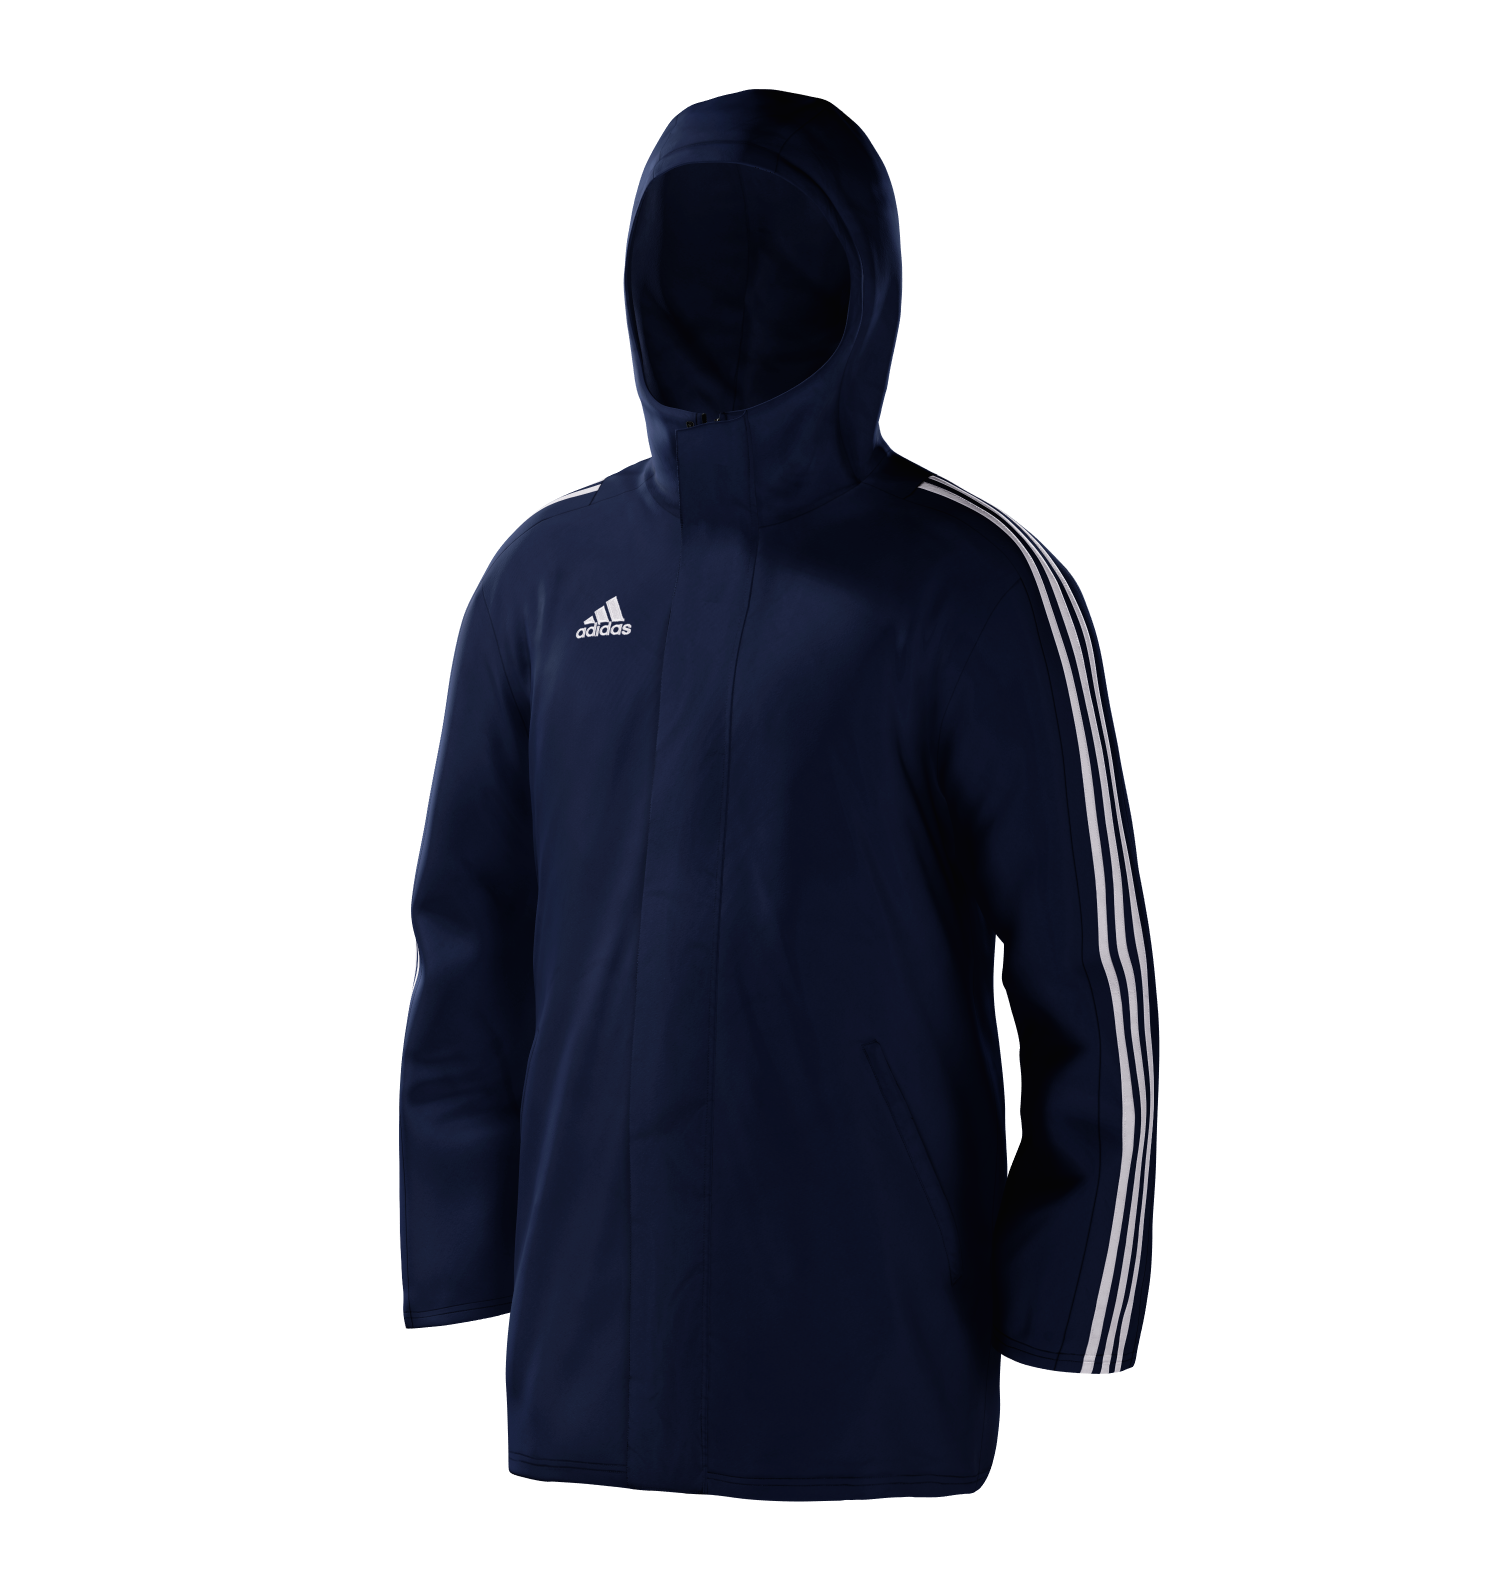 Ebrington CC Navy Adidas Stadium Jacket